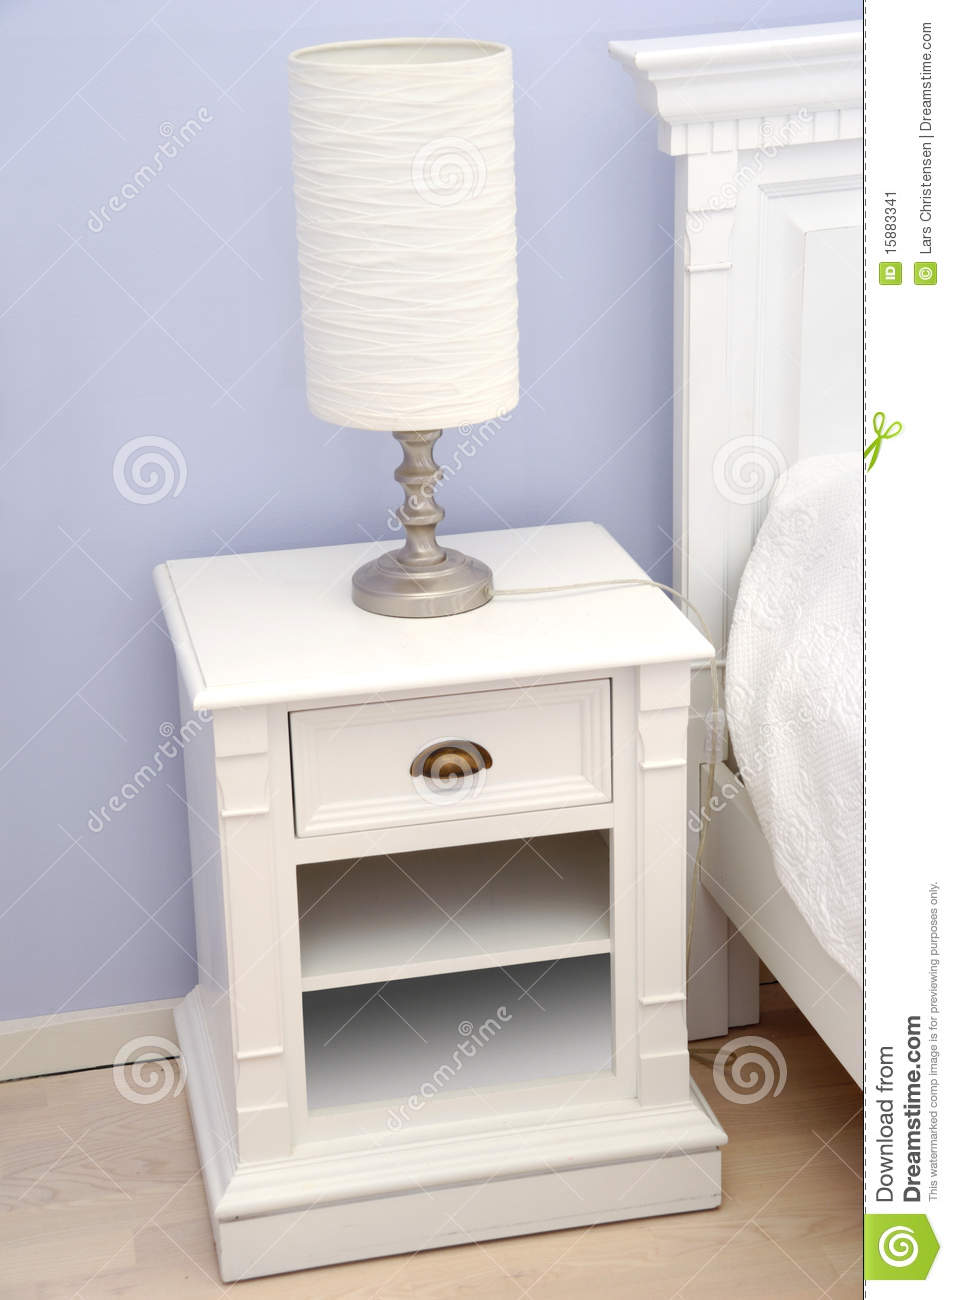 Table de chevet avec la lampe image stock image 15883341 for Table de chevet enfants